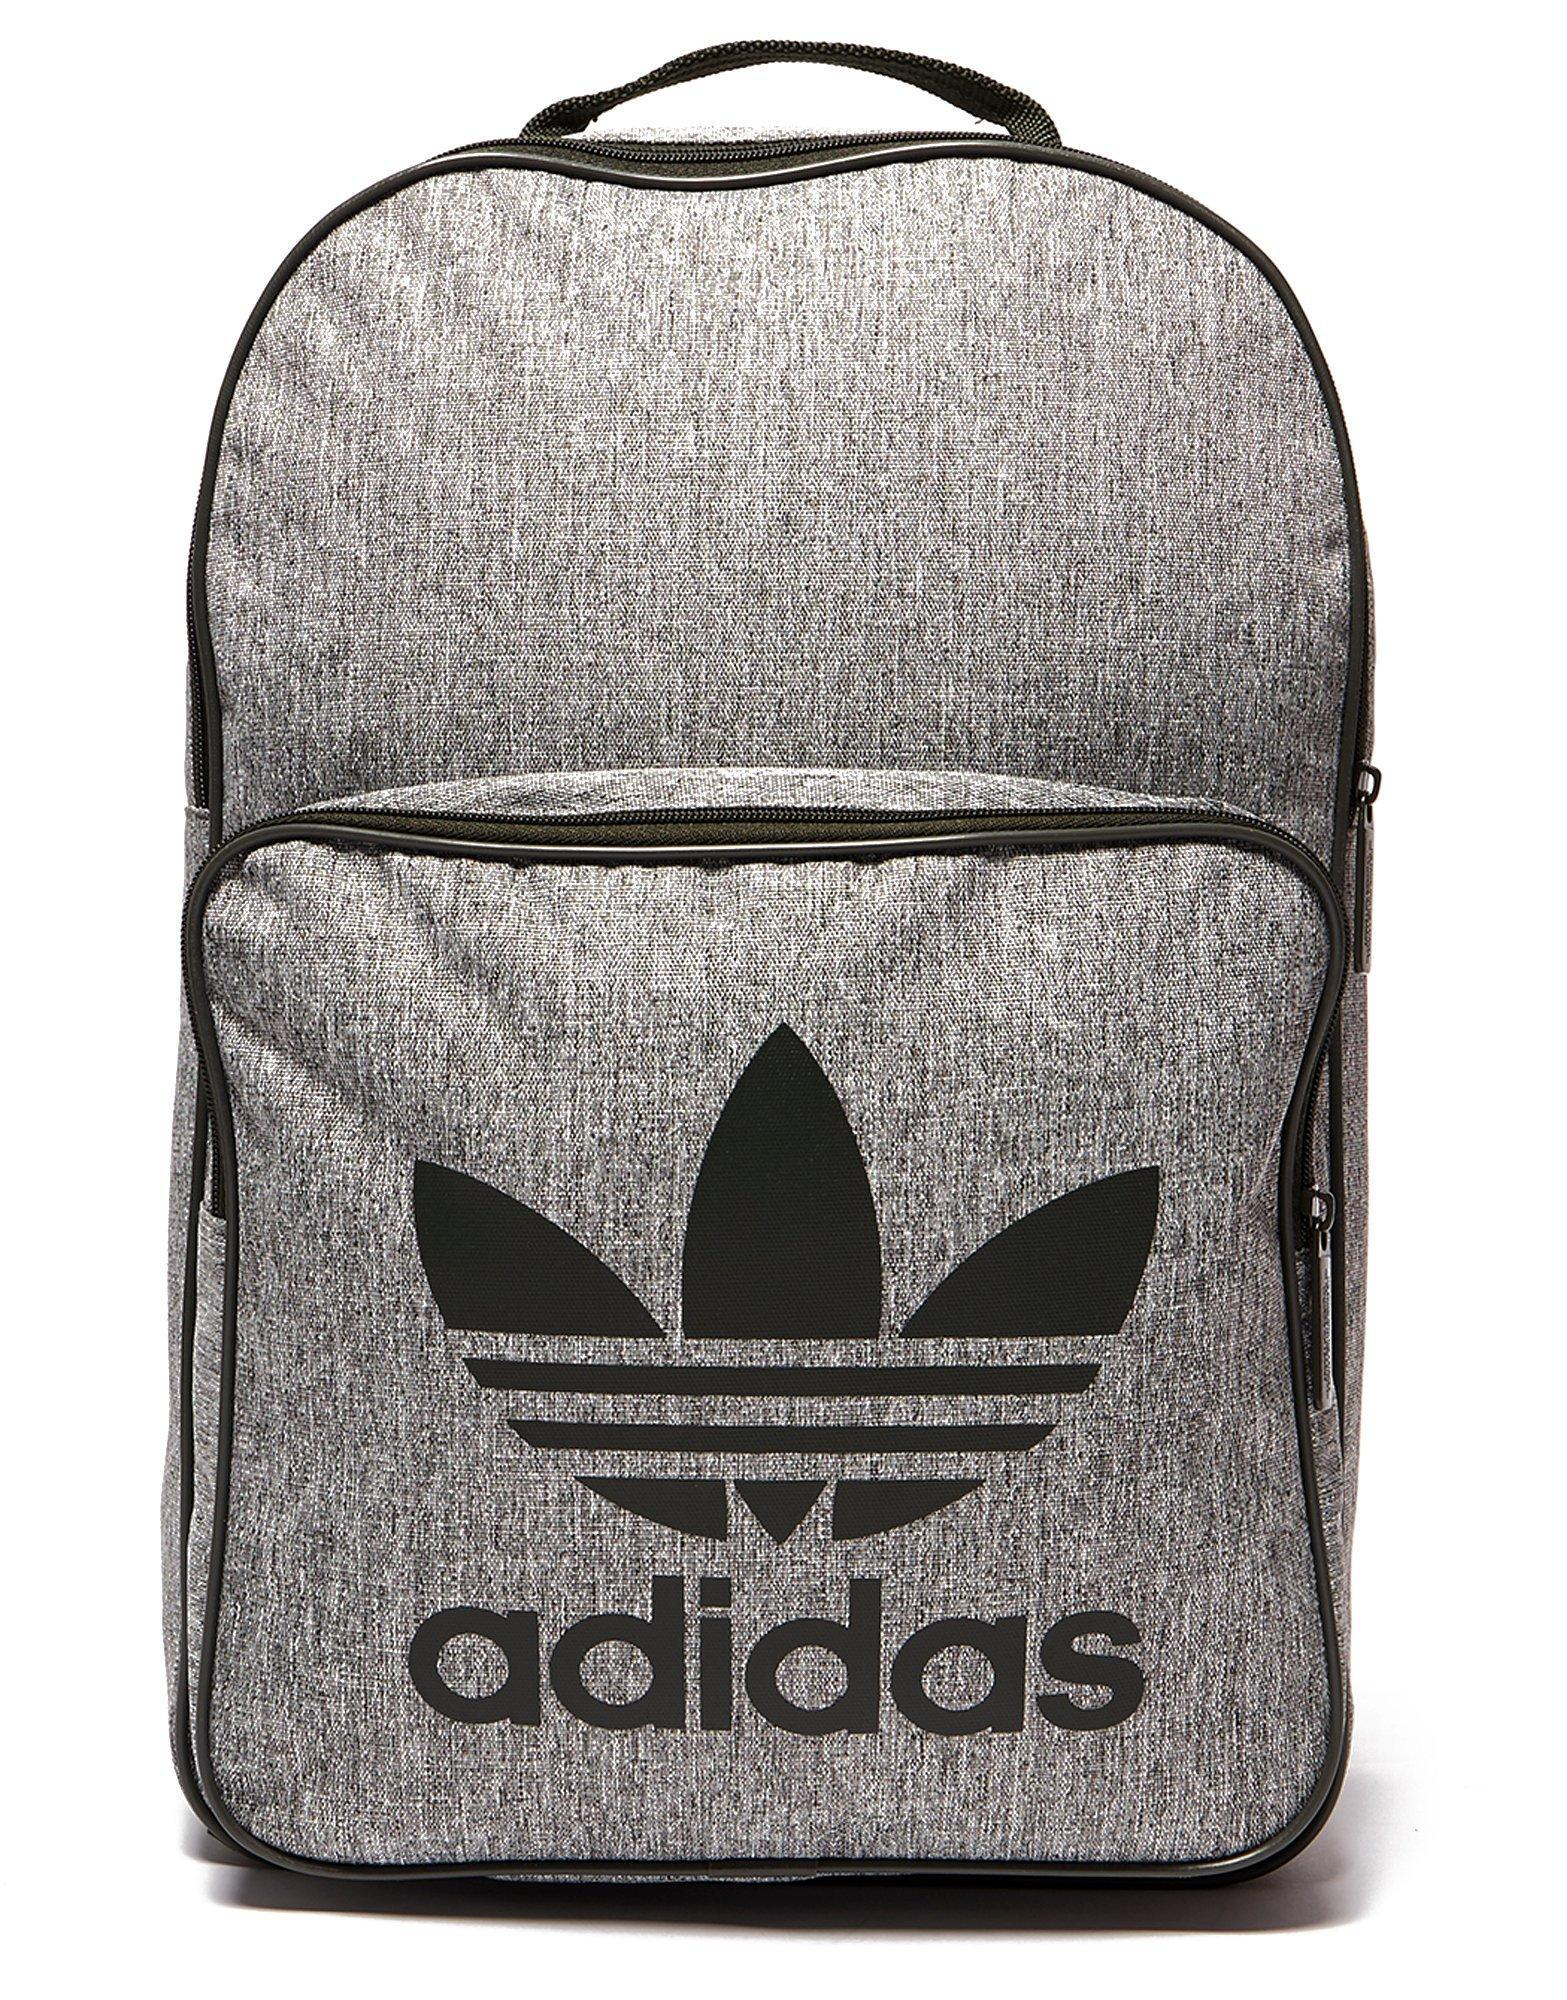 Lyst - adidas Originals Classic Trefoil Backpack in Gray for Men 5d4d6a29be9c3